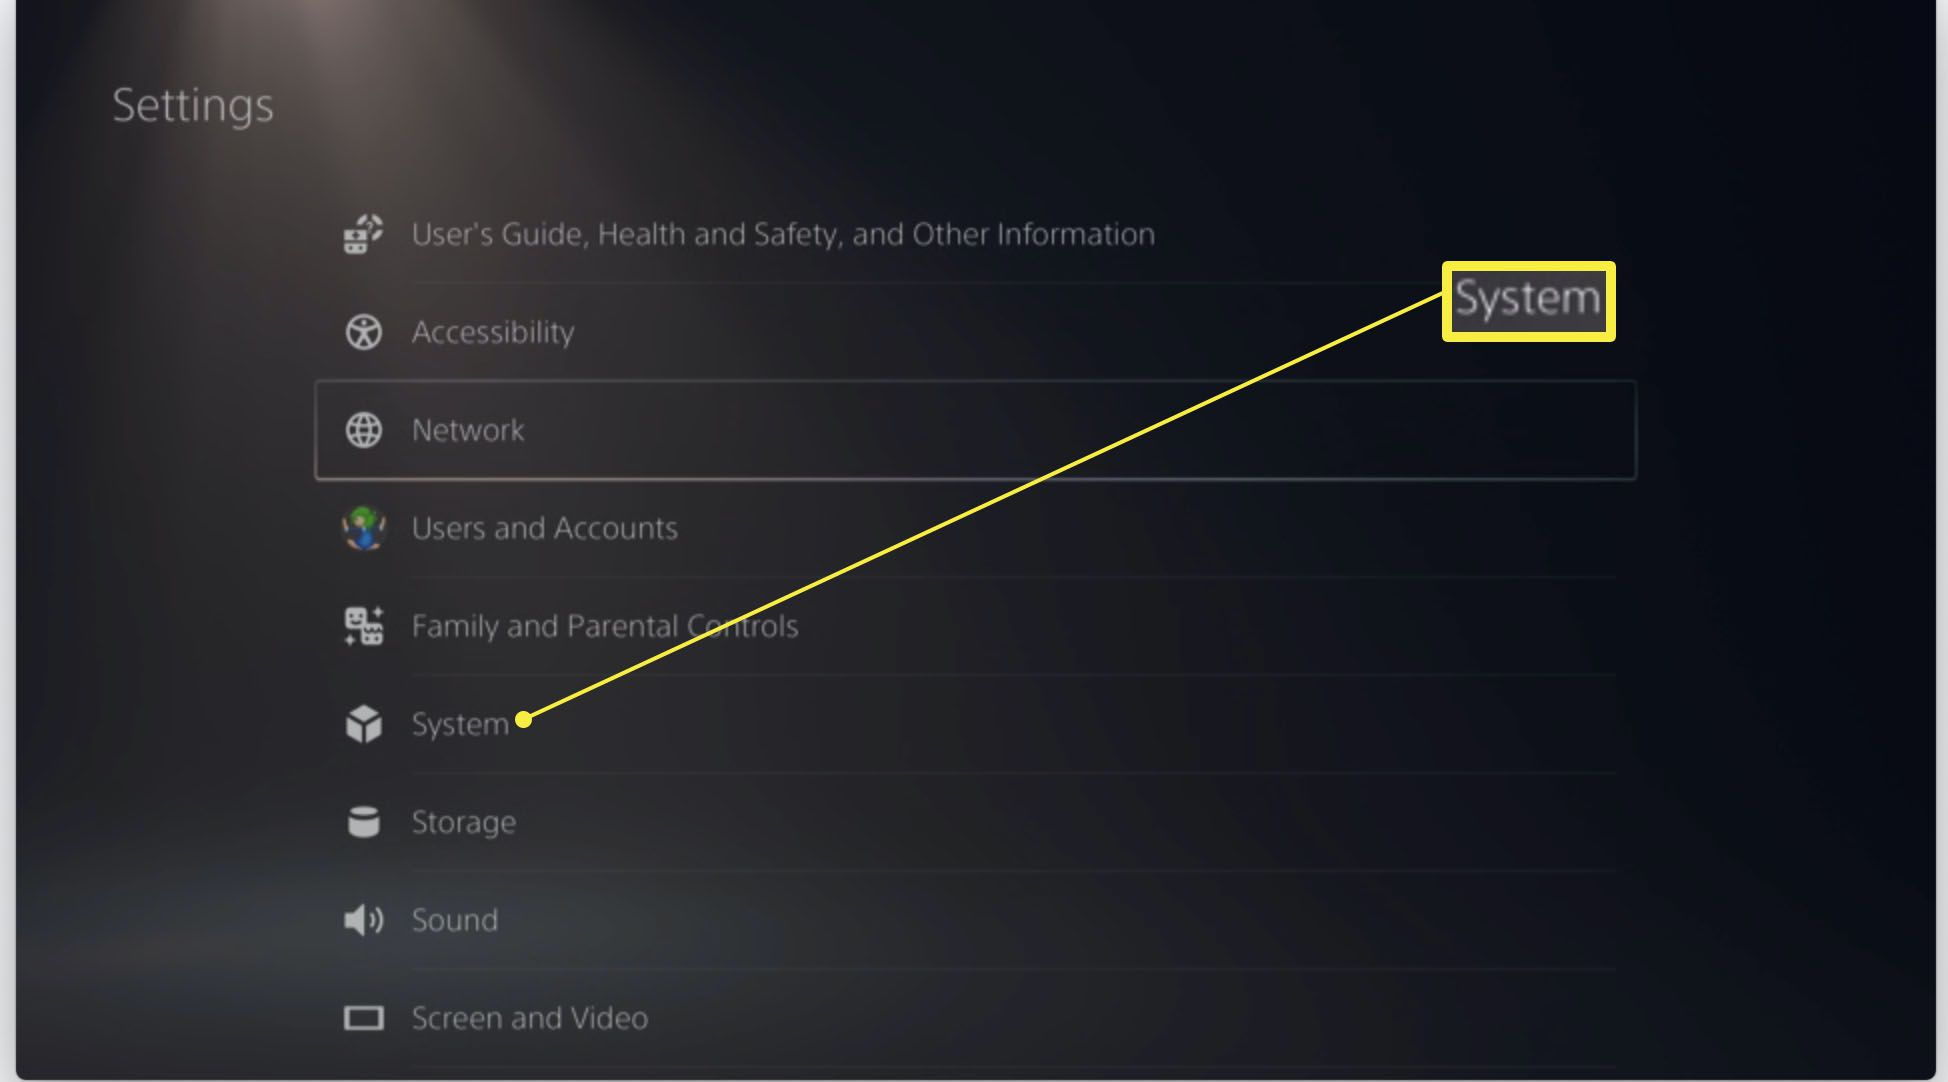 PlayStation 5 settings with System highlighted